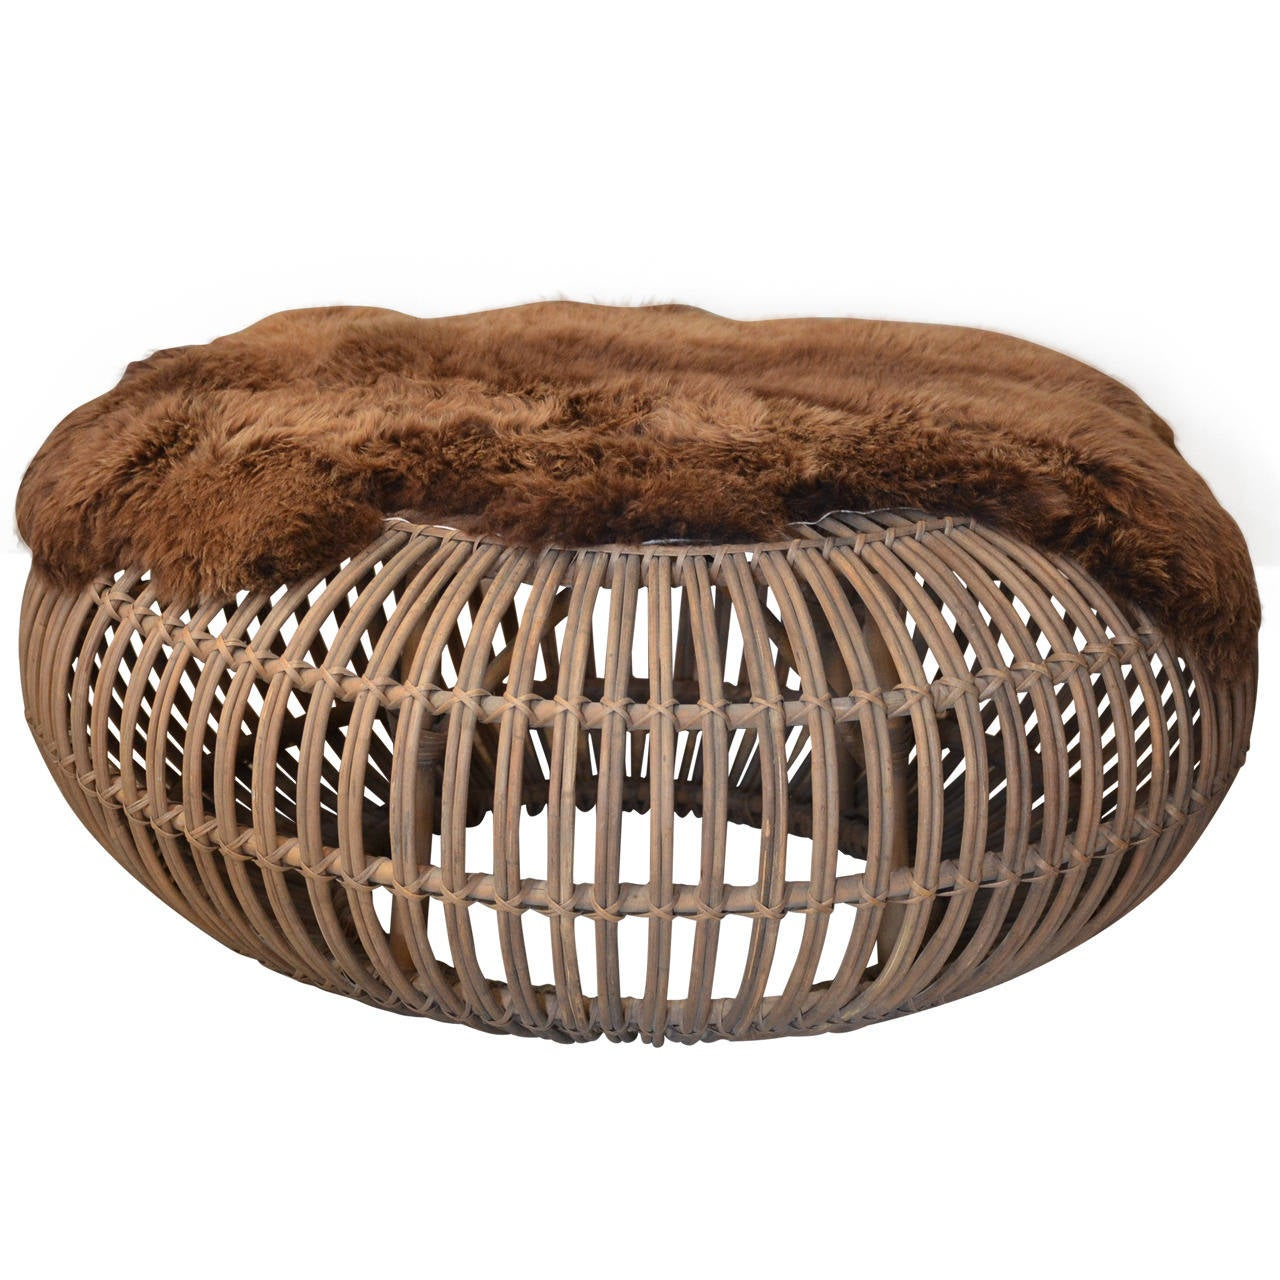 Large Round Rattan Ottoman With Thick Fur Cover By Franco